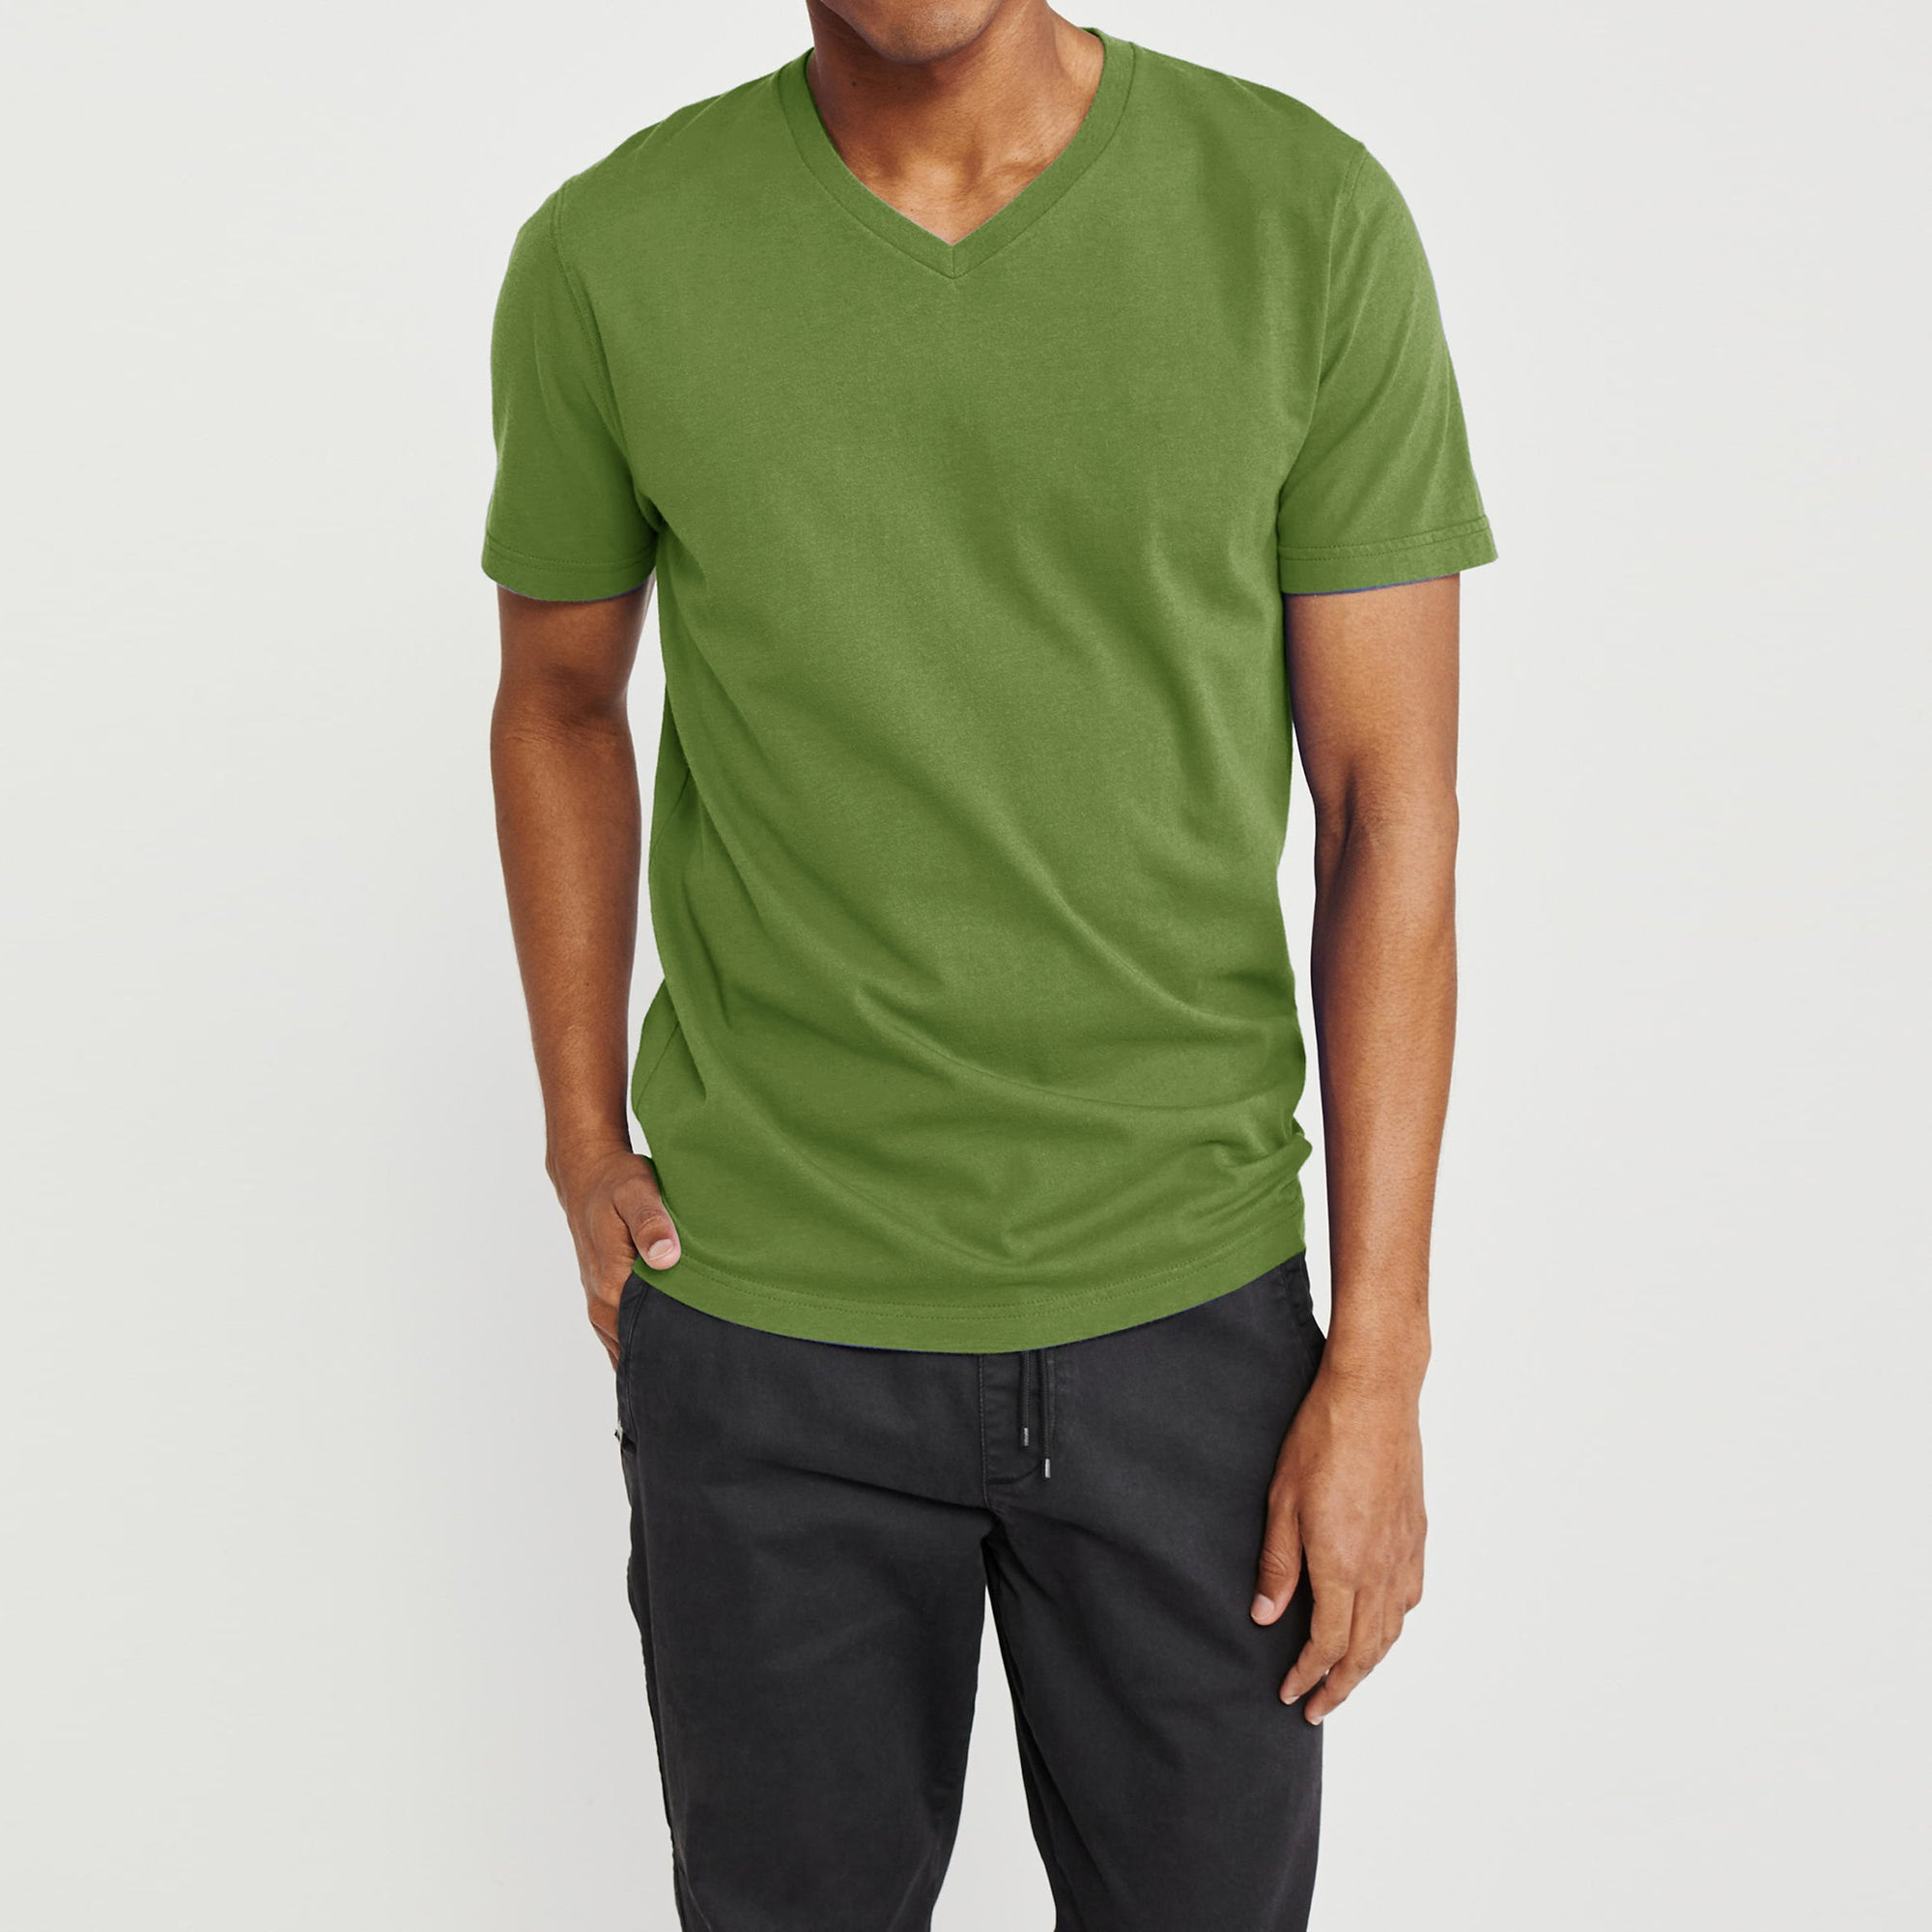 Beverly Hills V Neck Half Sleeve Tee Shirt For Men-Parrot-BE8190